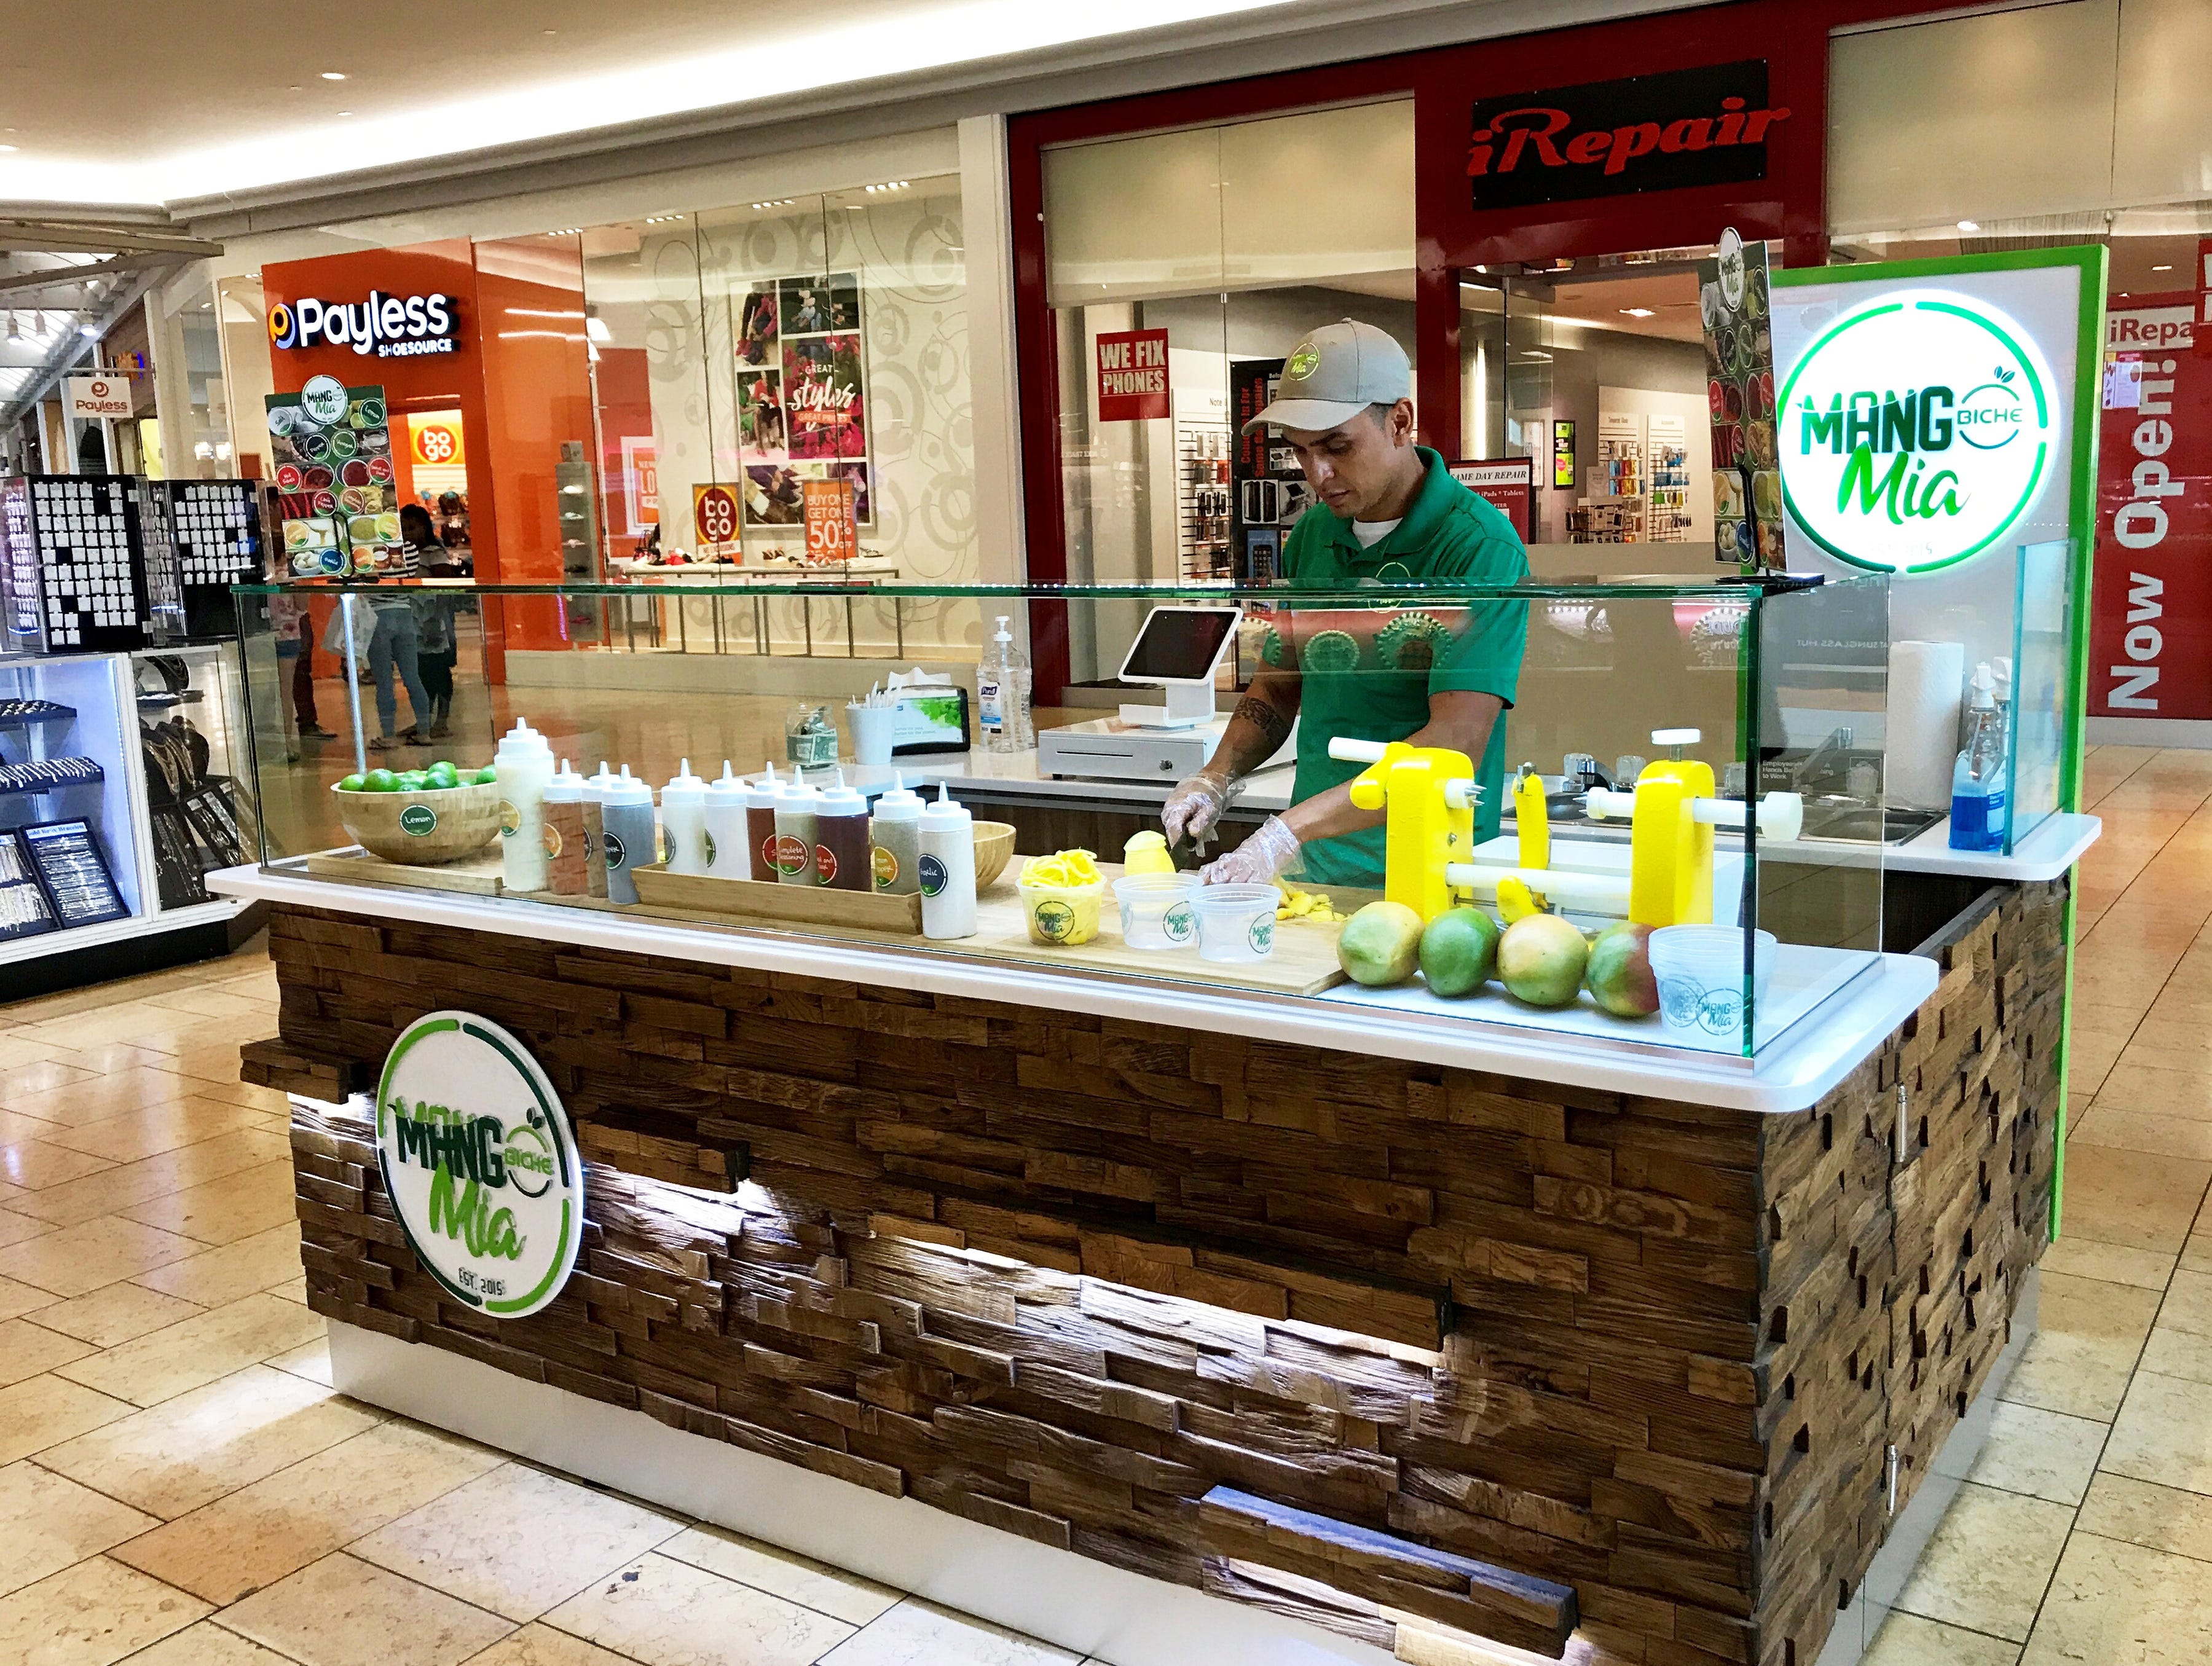 Mango Biche Mia opened in April 2018 at the concourse entrance to the food court at Coastland Center mall in Naples.